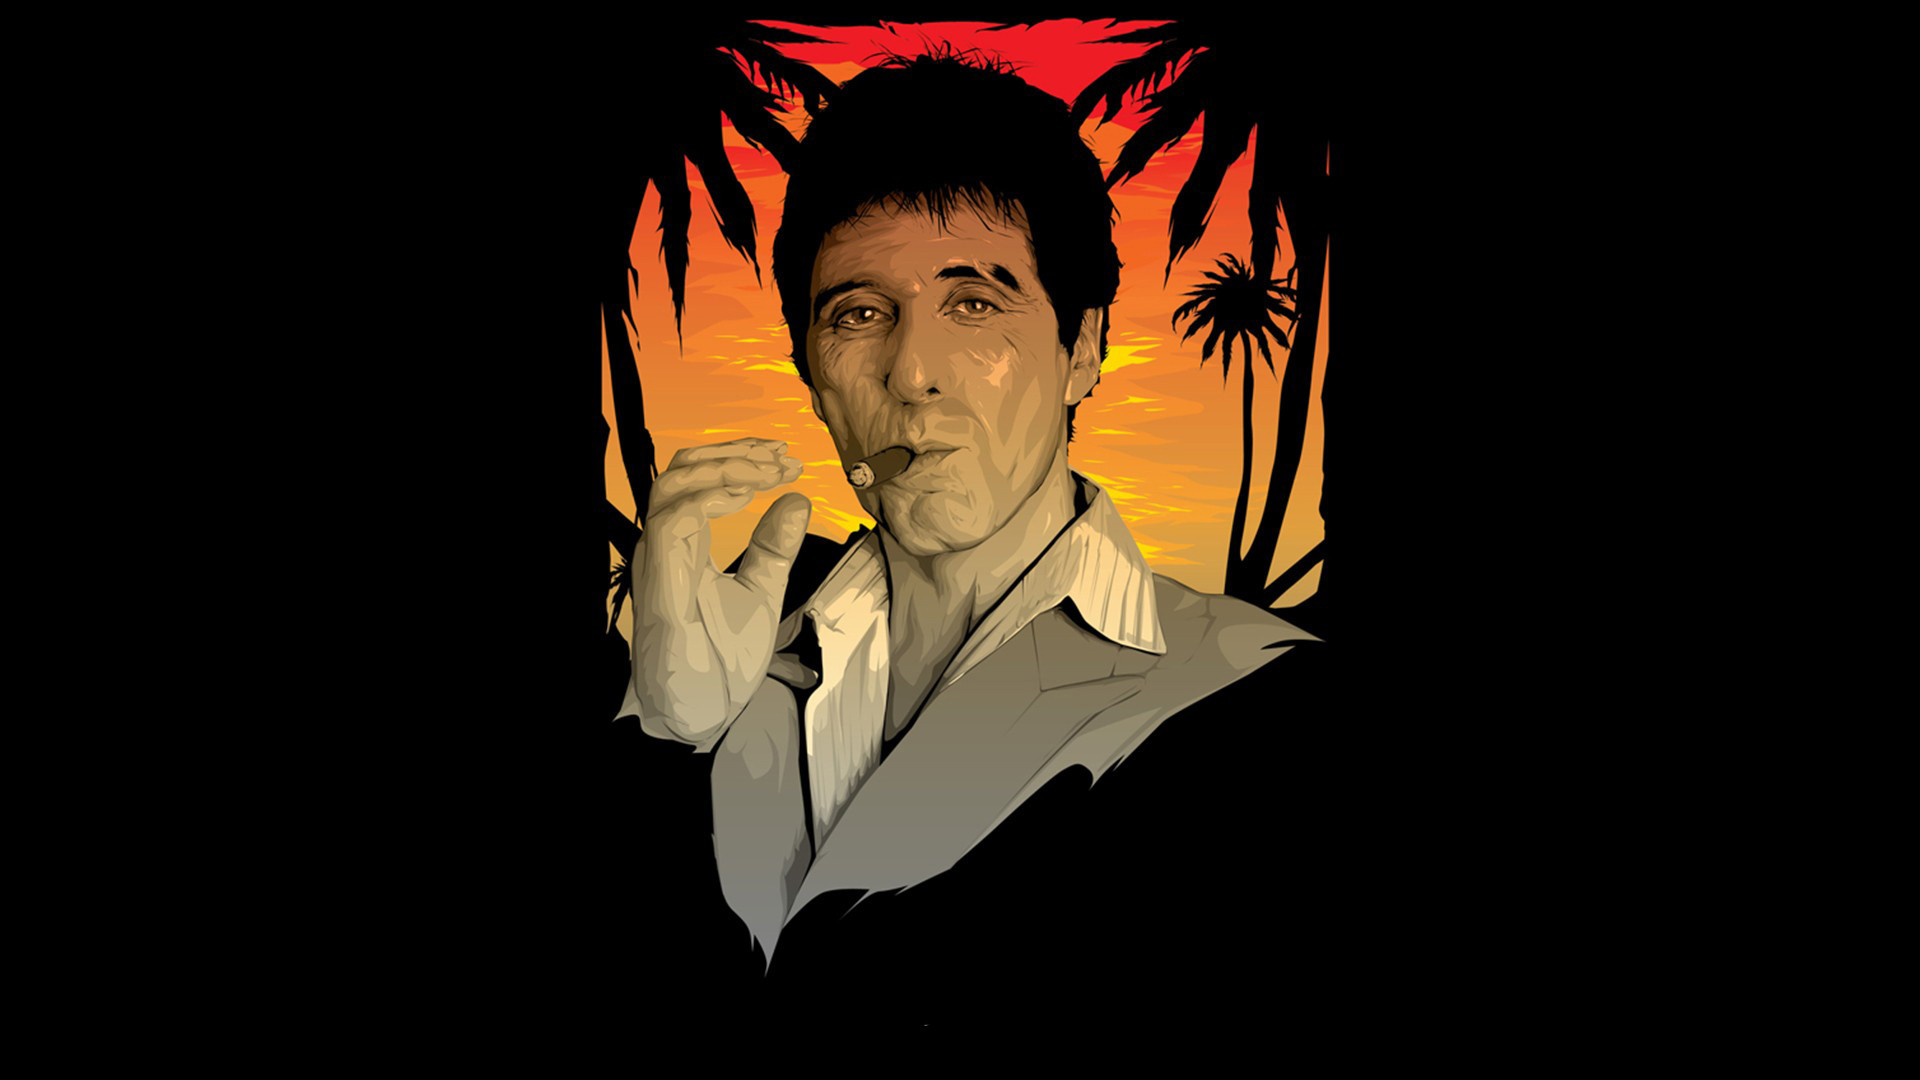 1920x1080 Scarface Full HD Wallpaper http://wallpapers-and-backgrounds.net/